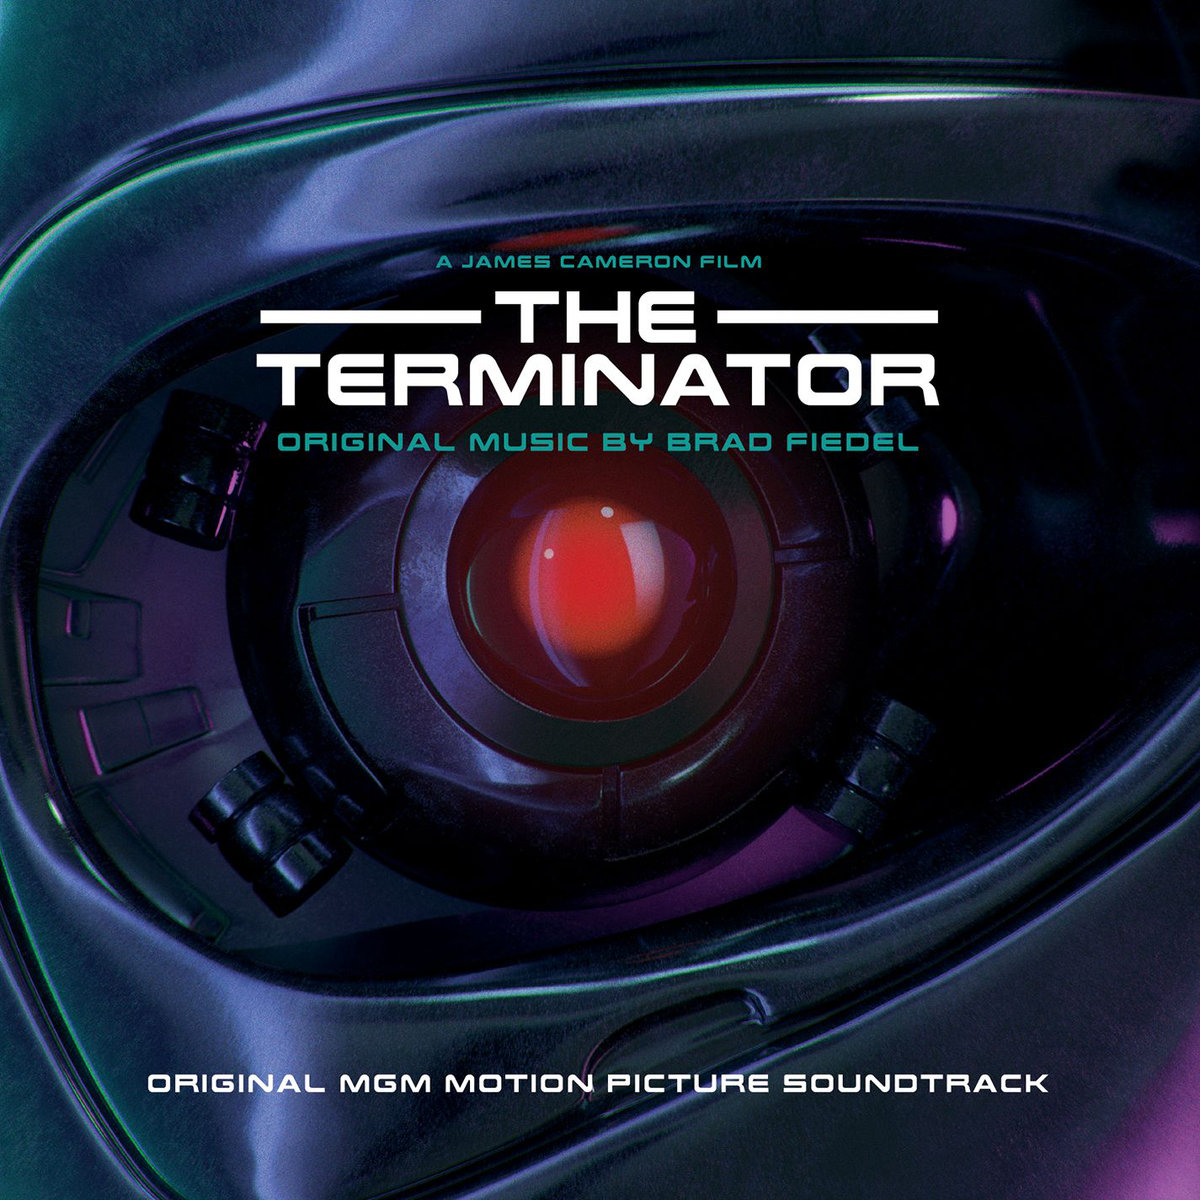 The Terminator Original Motion Picture Soundtrack